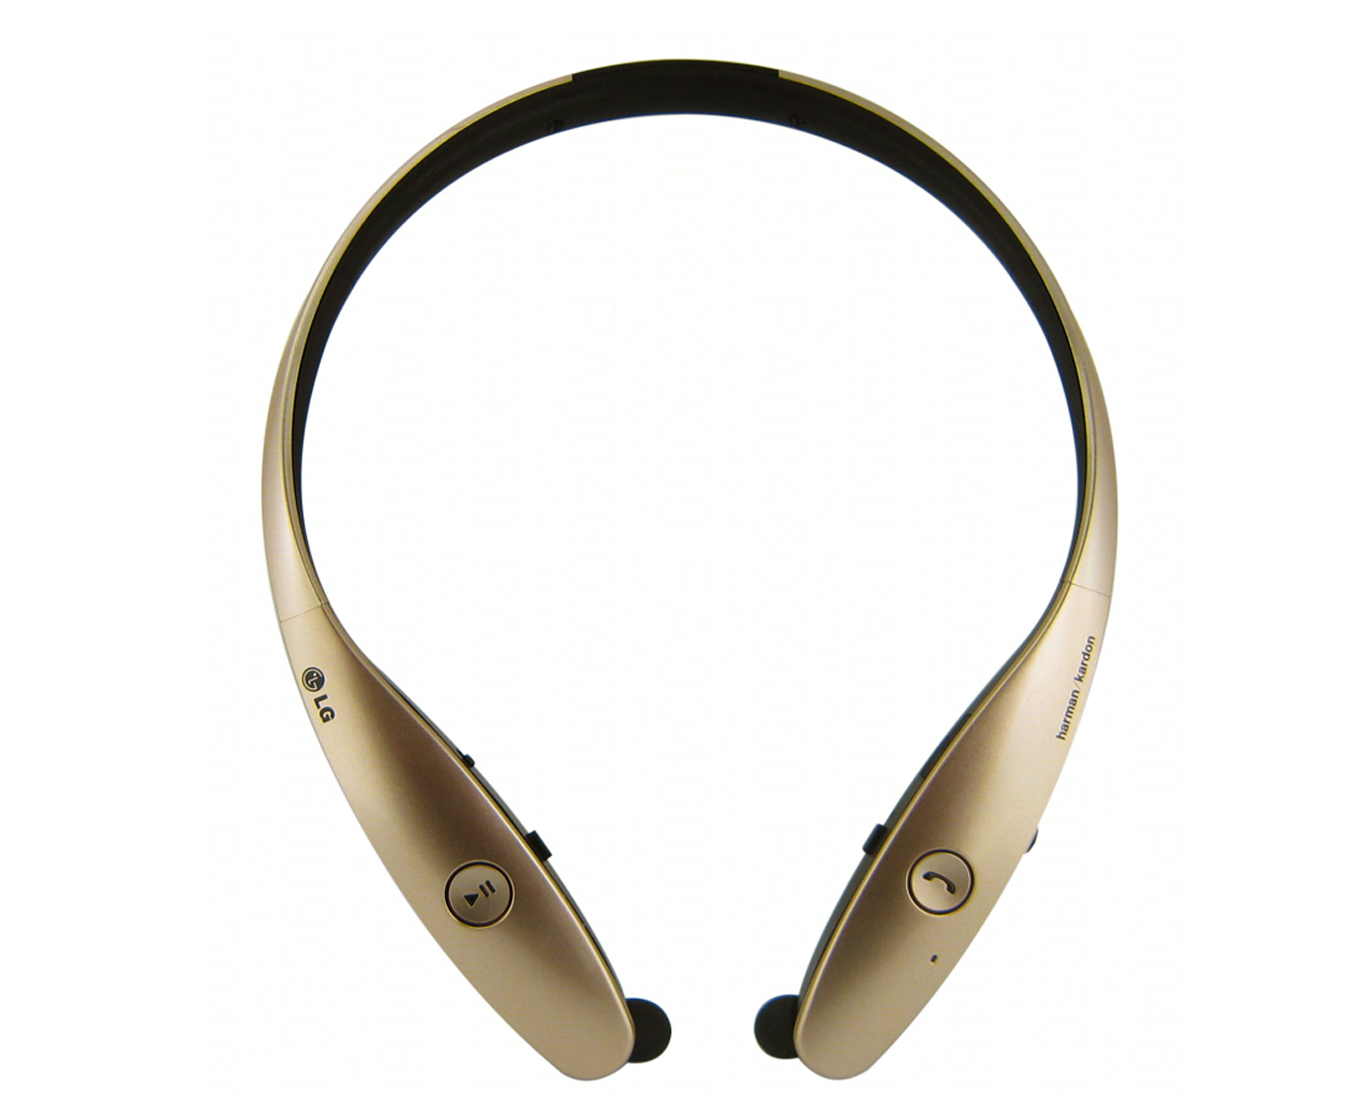 LG Tone HBS 900 Bluetooth Stereo Headset 35mm Jack Canal